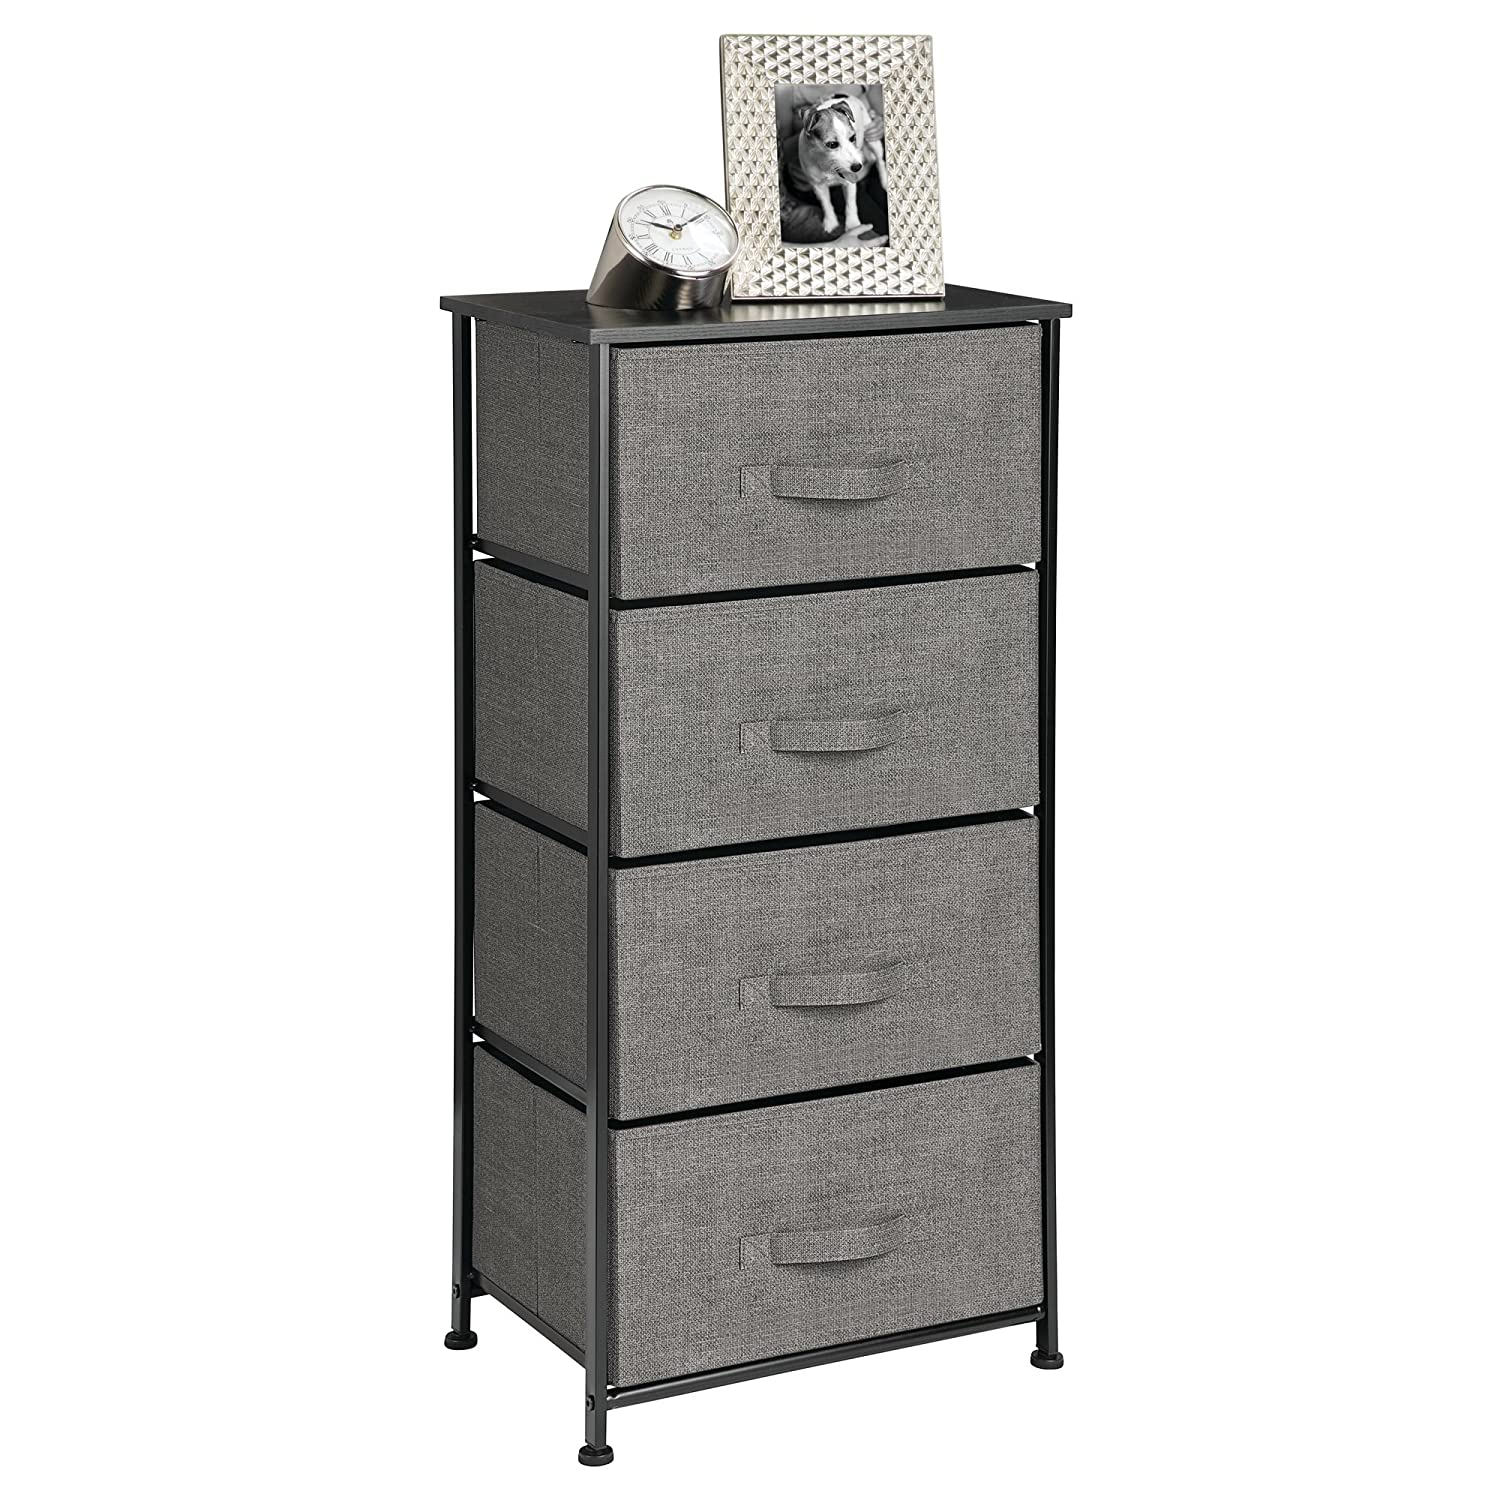 mDesign Fabric 4-Drawer Dresser and Storage Organizer Unit for Bedroom, Dorm Room, Apartment, Small Living Spaces - Charcoal MetroDecor